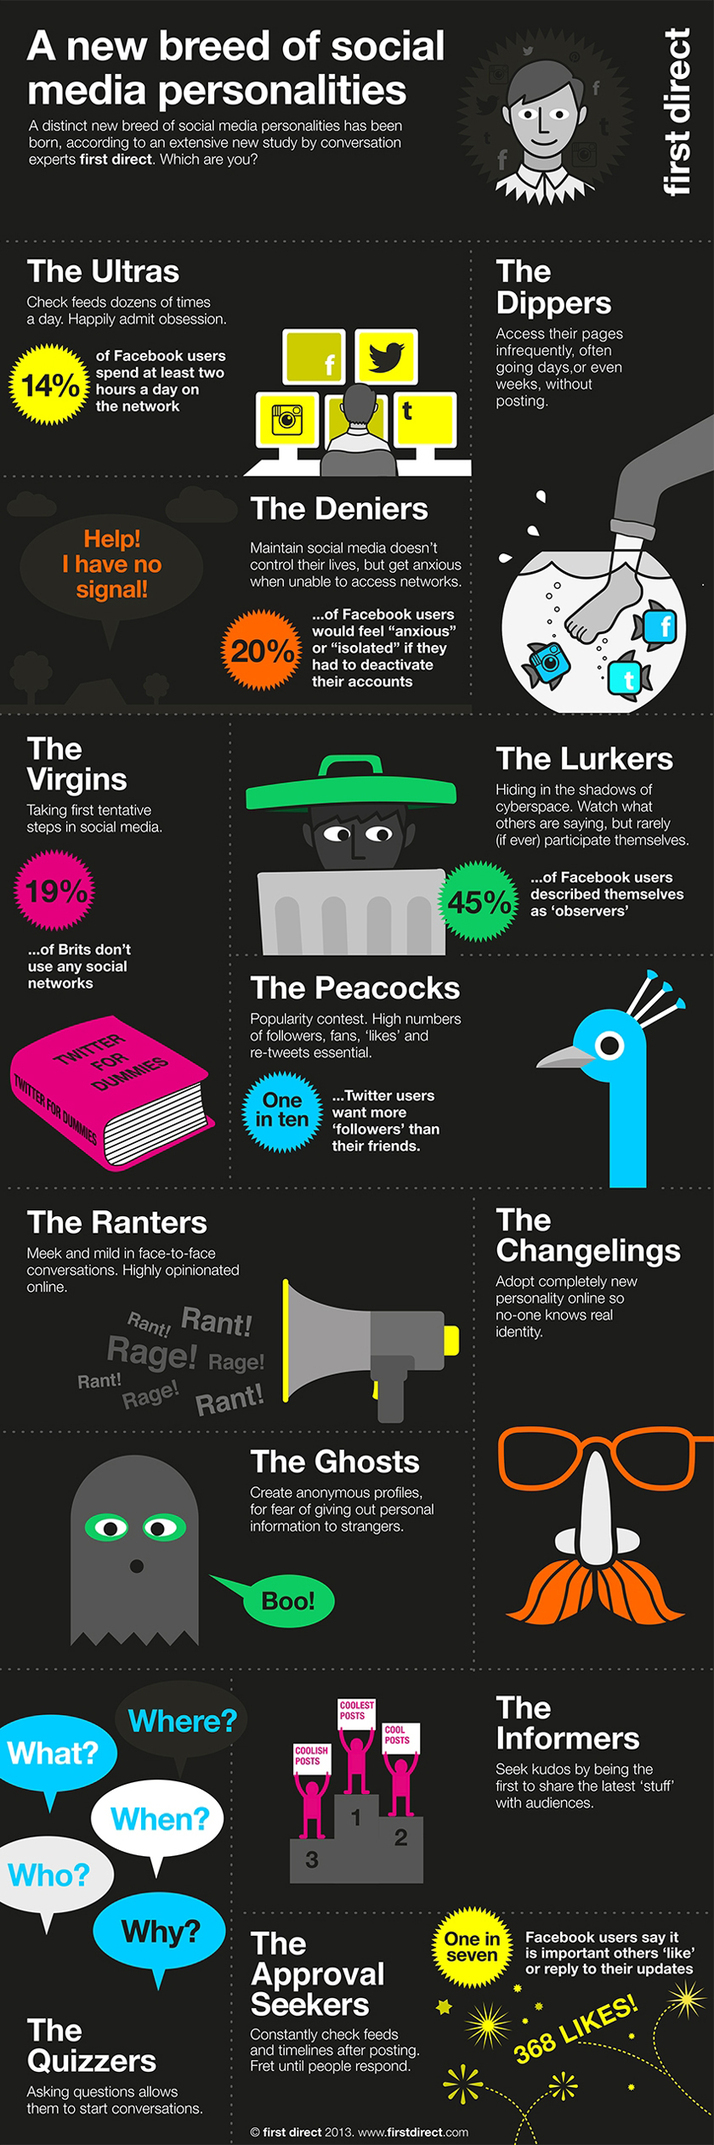 A New Breed of #SocialMedia Personalities [infographic] | The Wall post